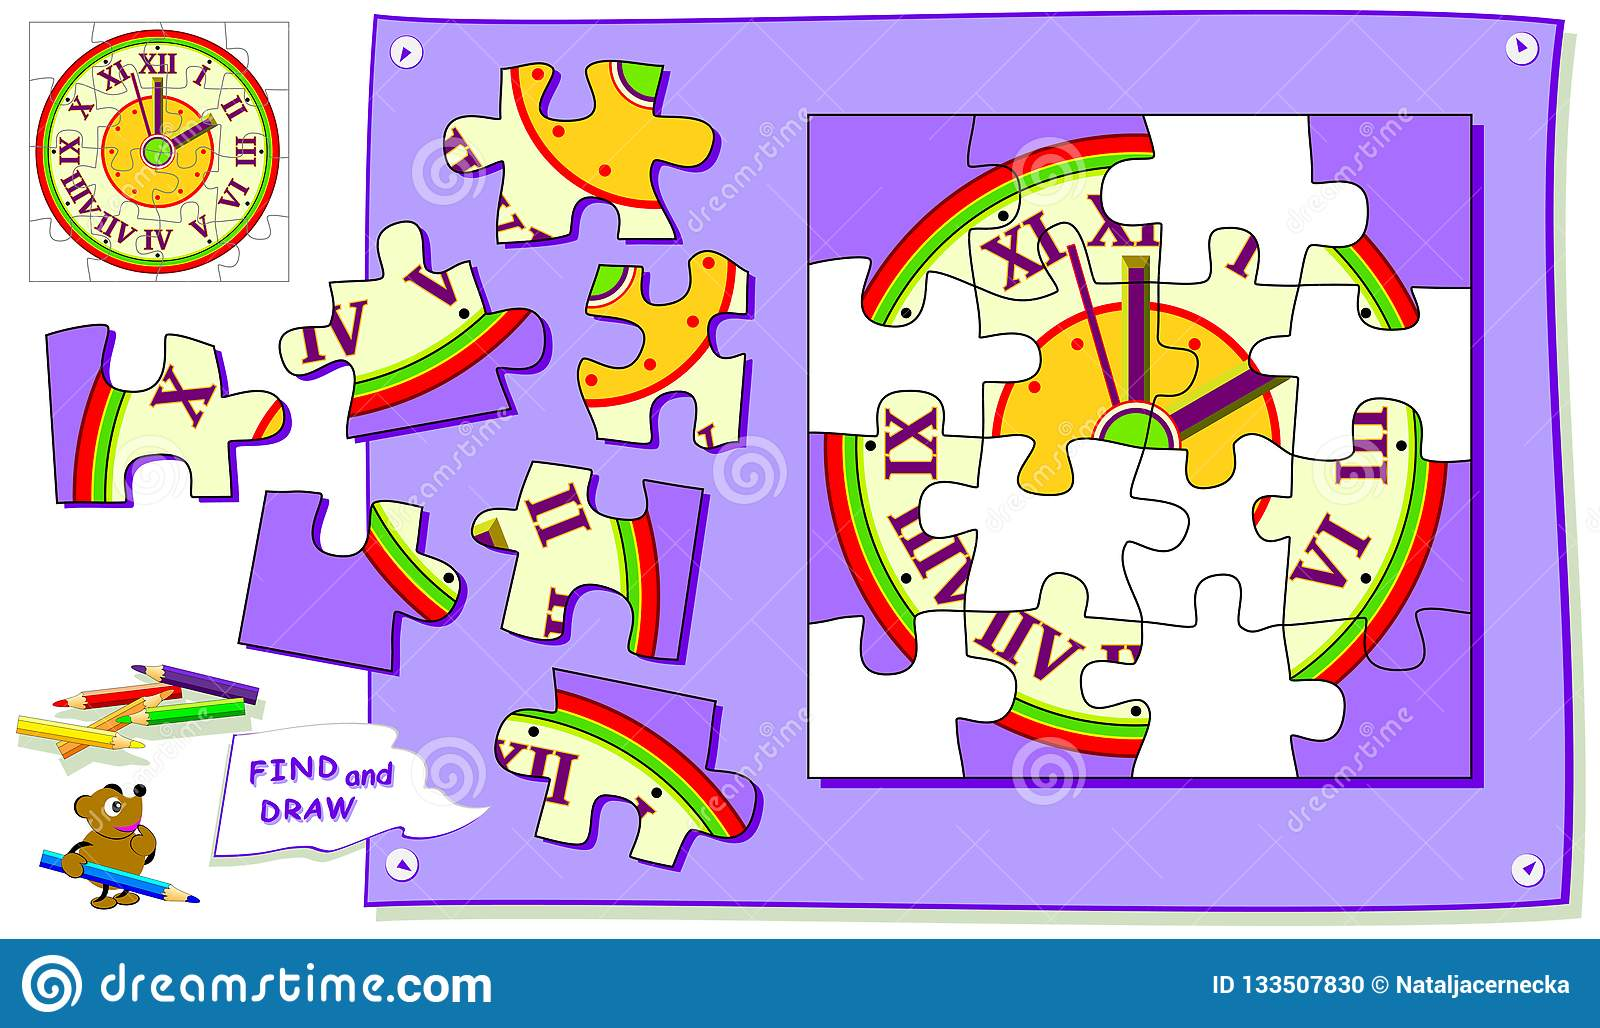 Logic Puzzle Game For Kids Need To Find The Place For